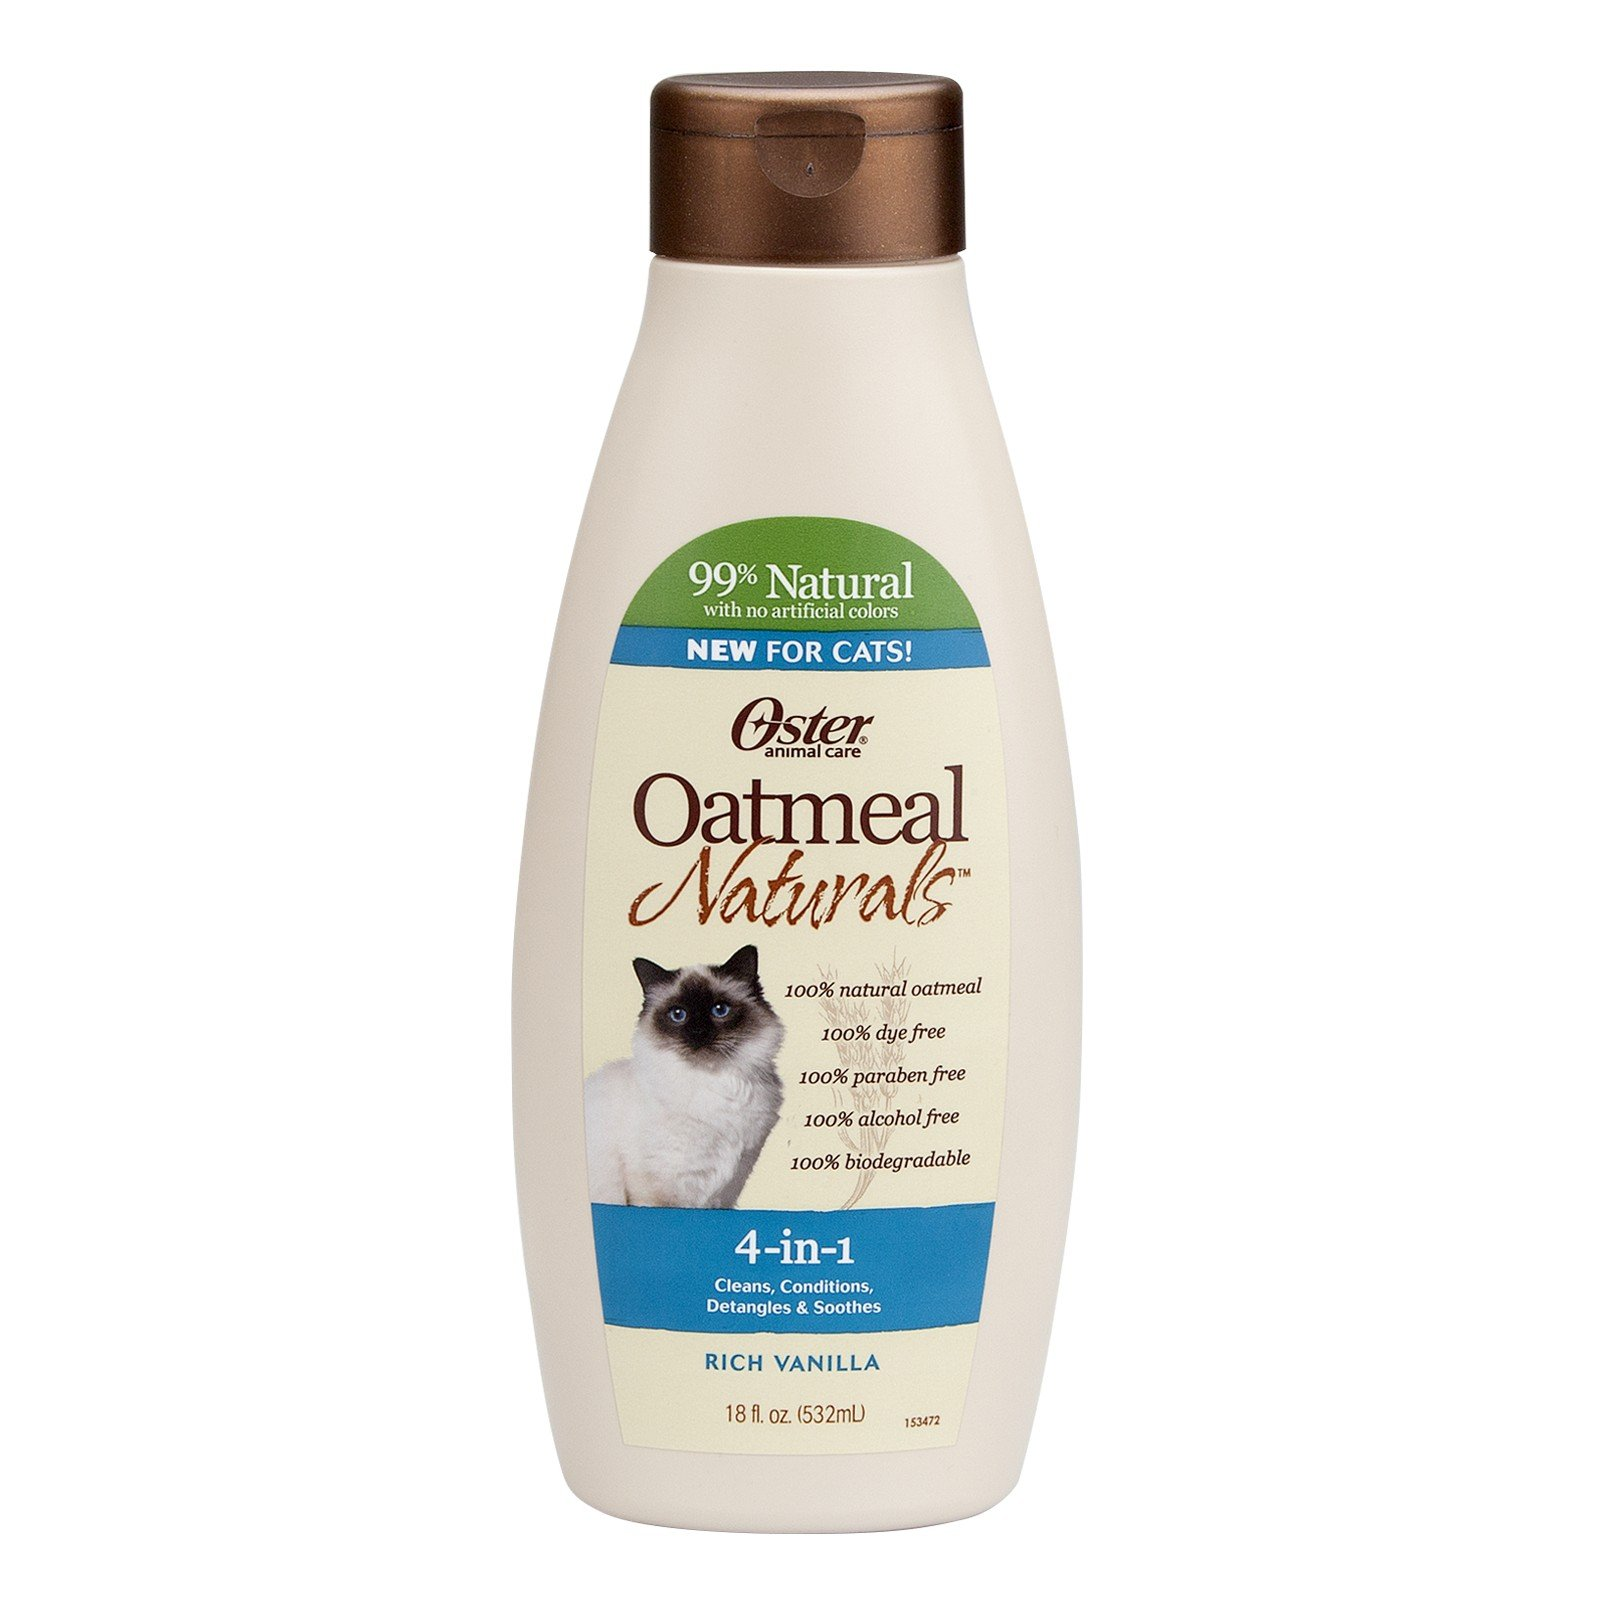 Oster Oatmeal Naturals 4-in-1 Cat Shampoo, Rich Vanilla, 18 Fluid Ounces (078590-765-001)